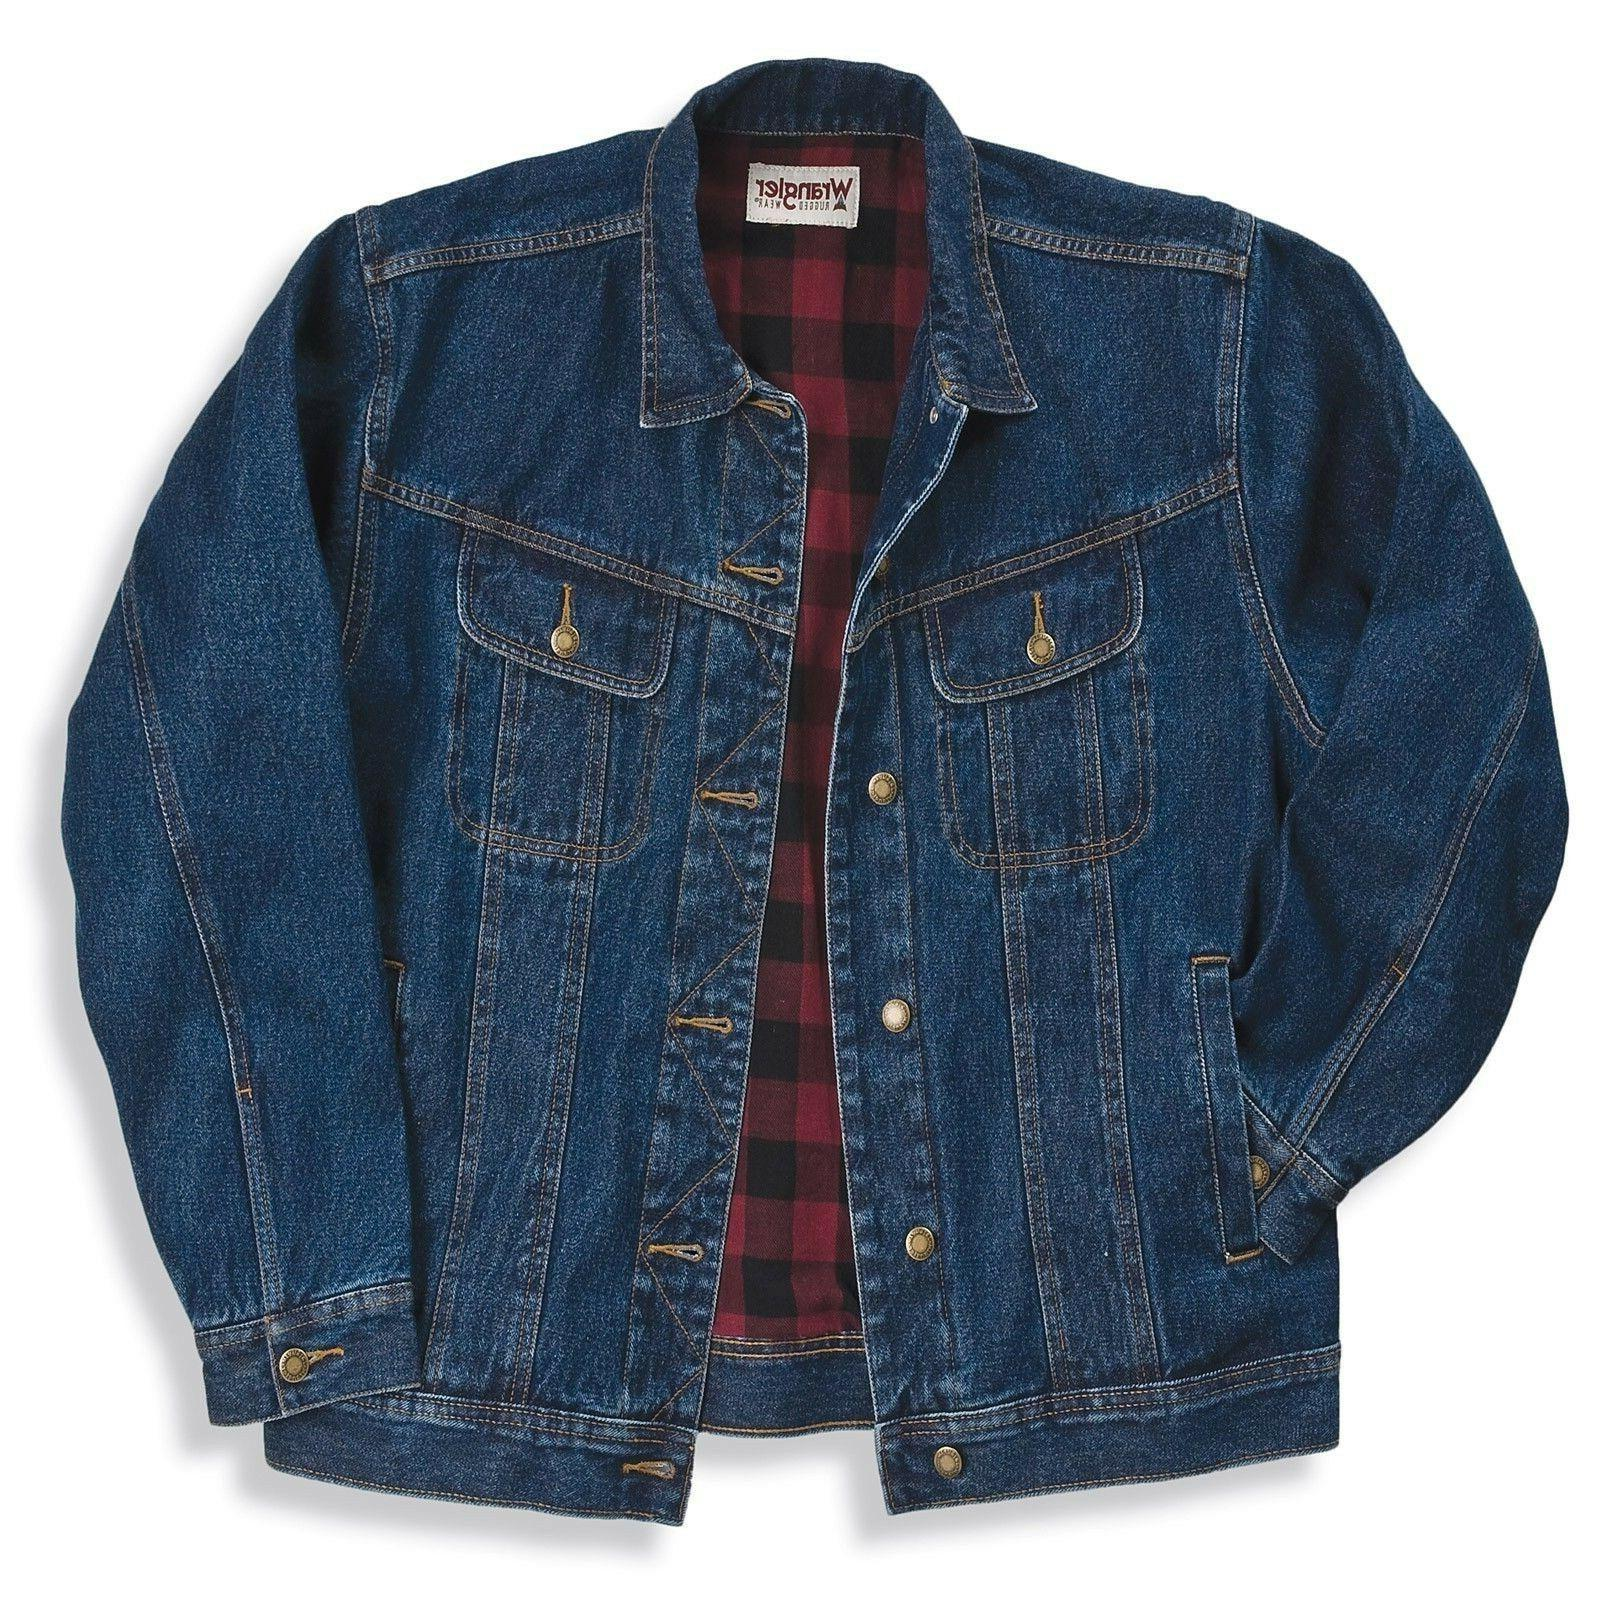 nwt rugged wear flannel lined jacket various